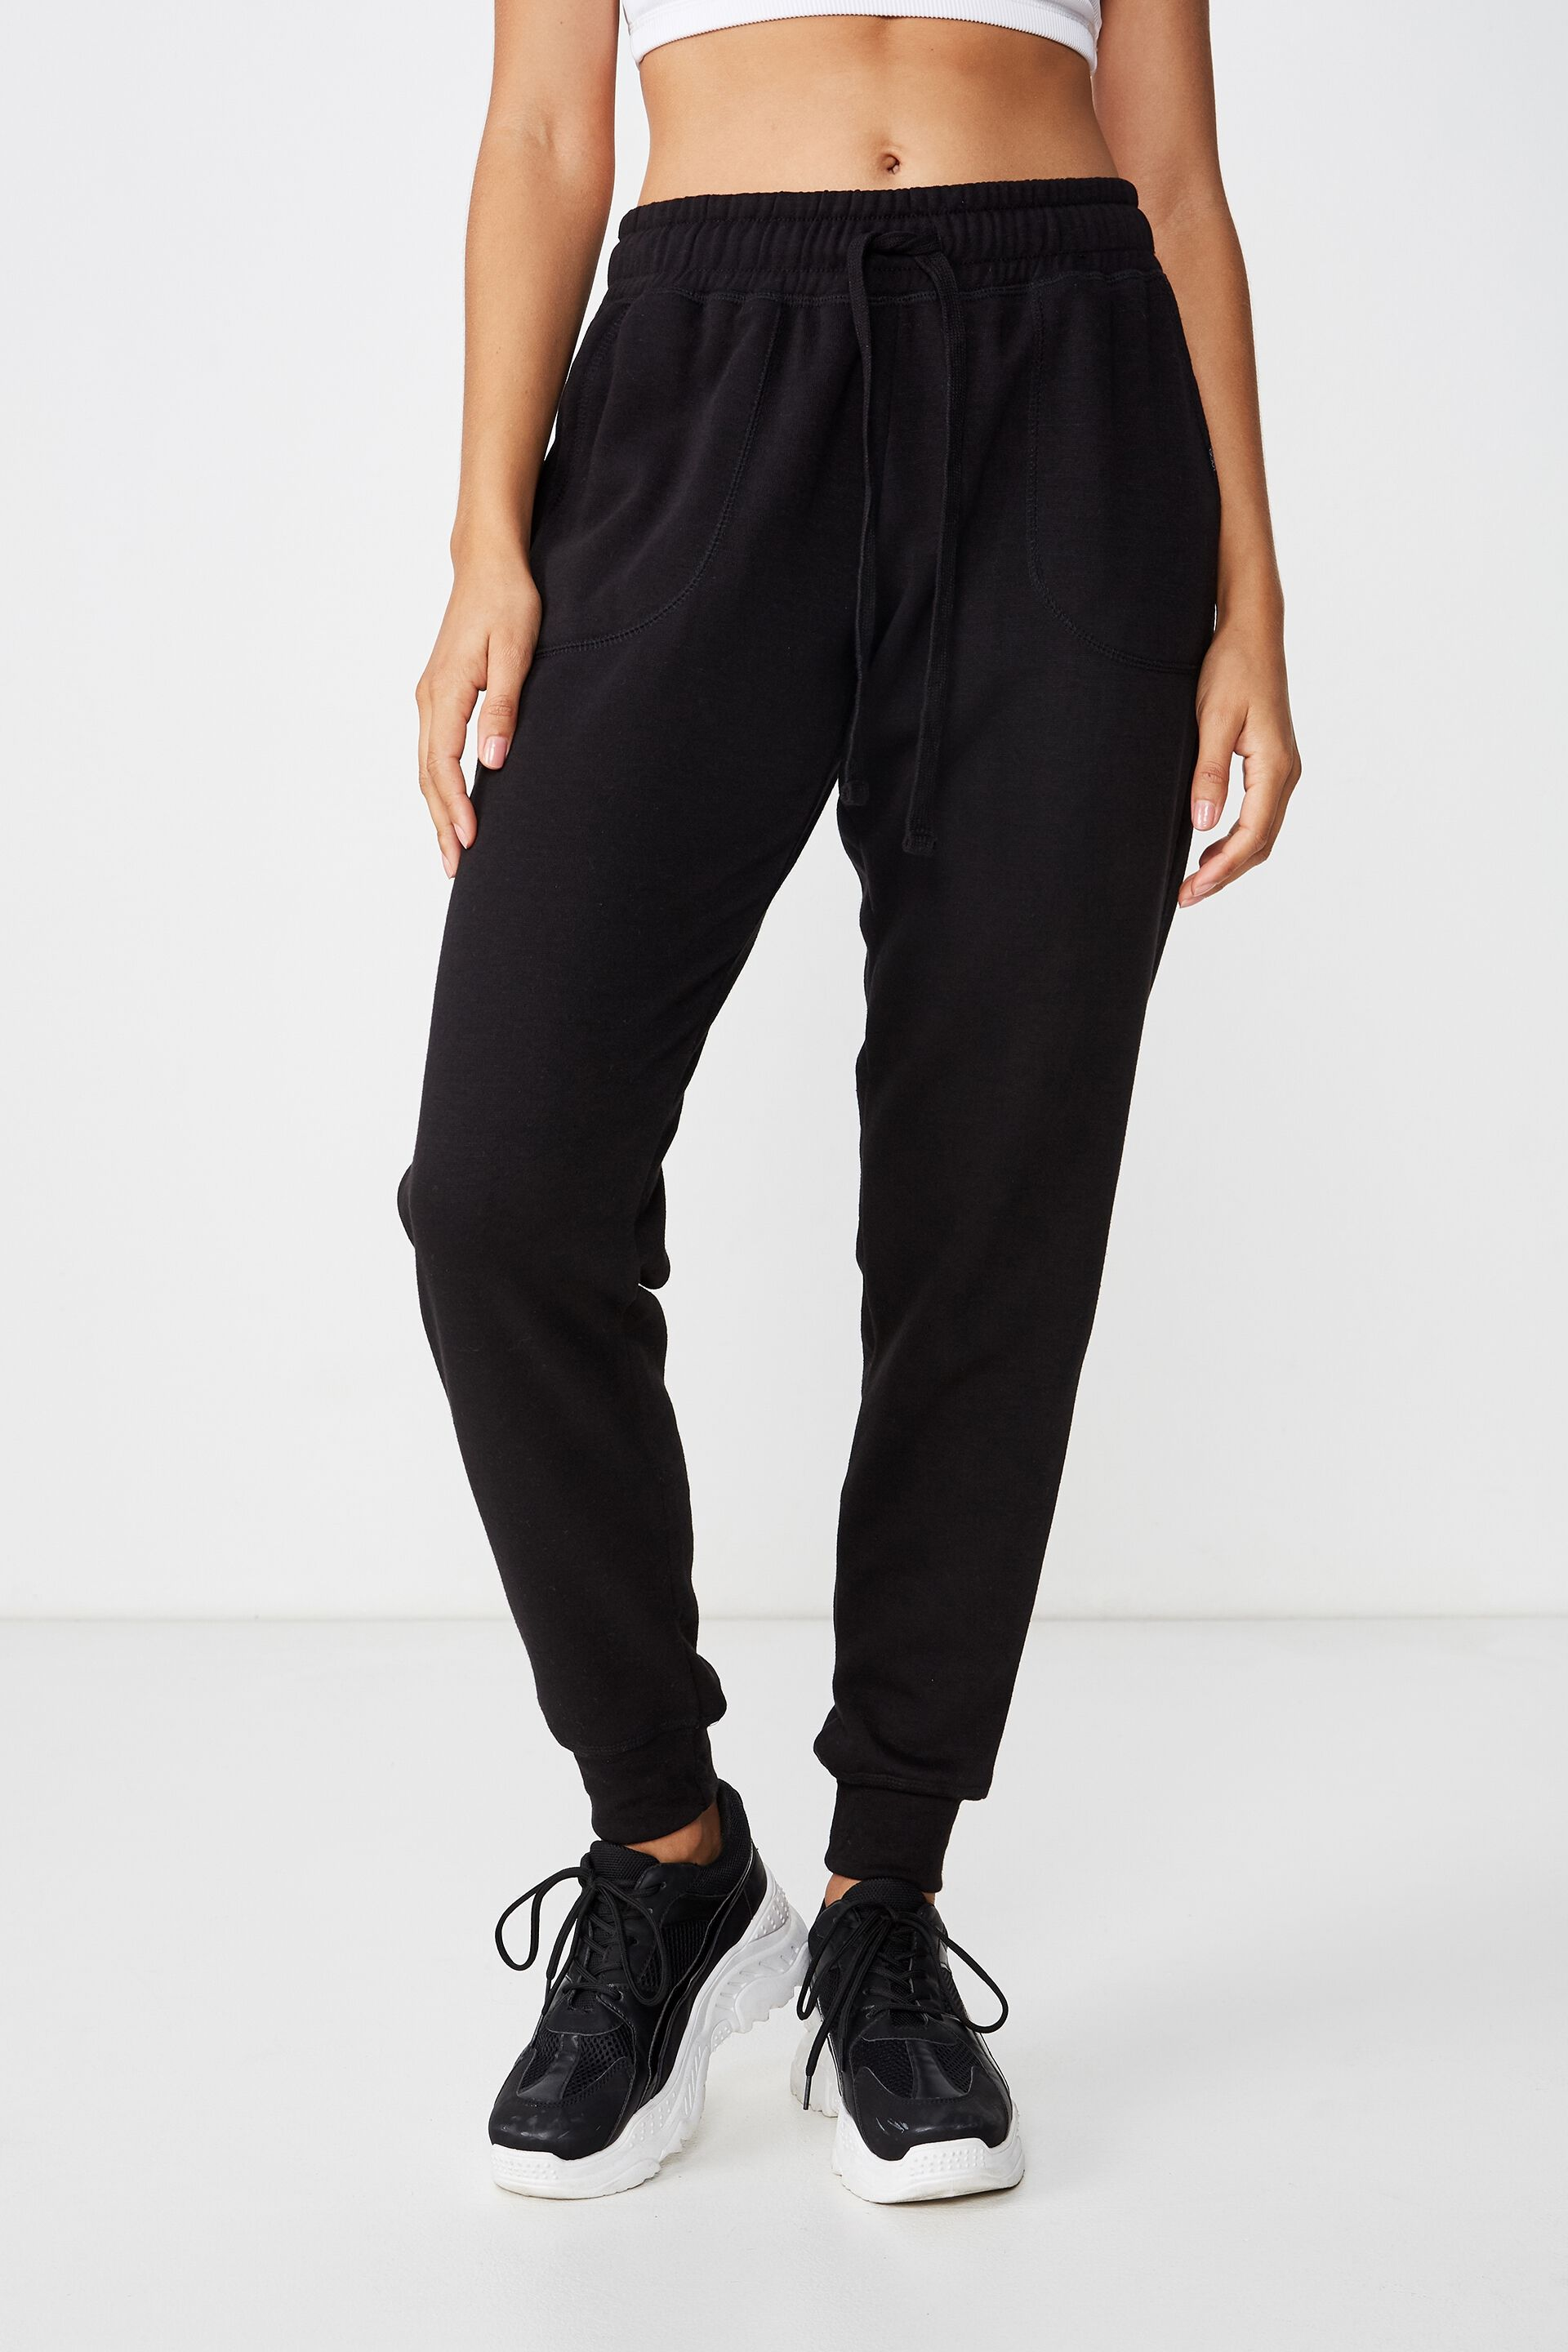 Women's Track pants & Jersey Pants | Cotton On